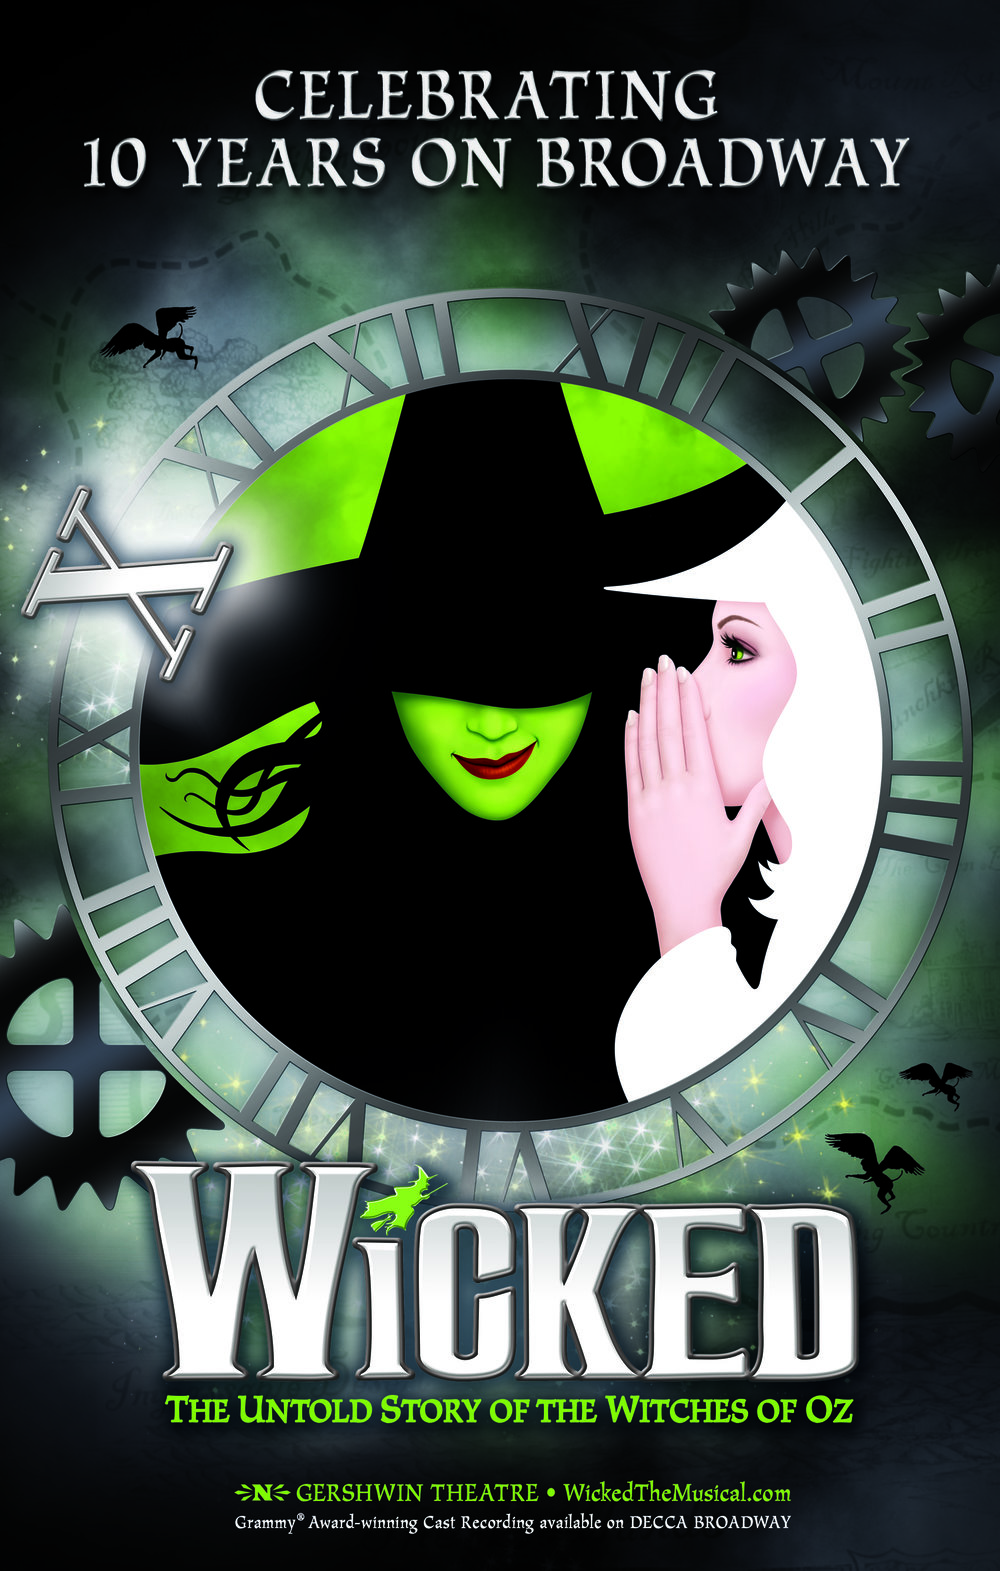 Initial concept development of Wicked's 10th Anniversary on Broadway key-art in 2013. Creative Direction: David Barrineau